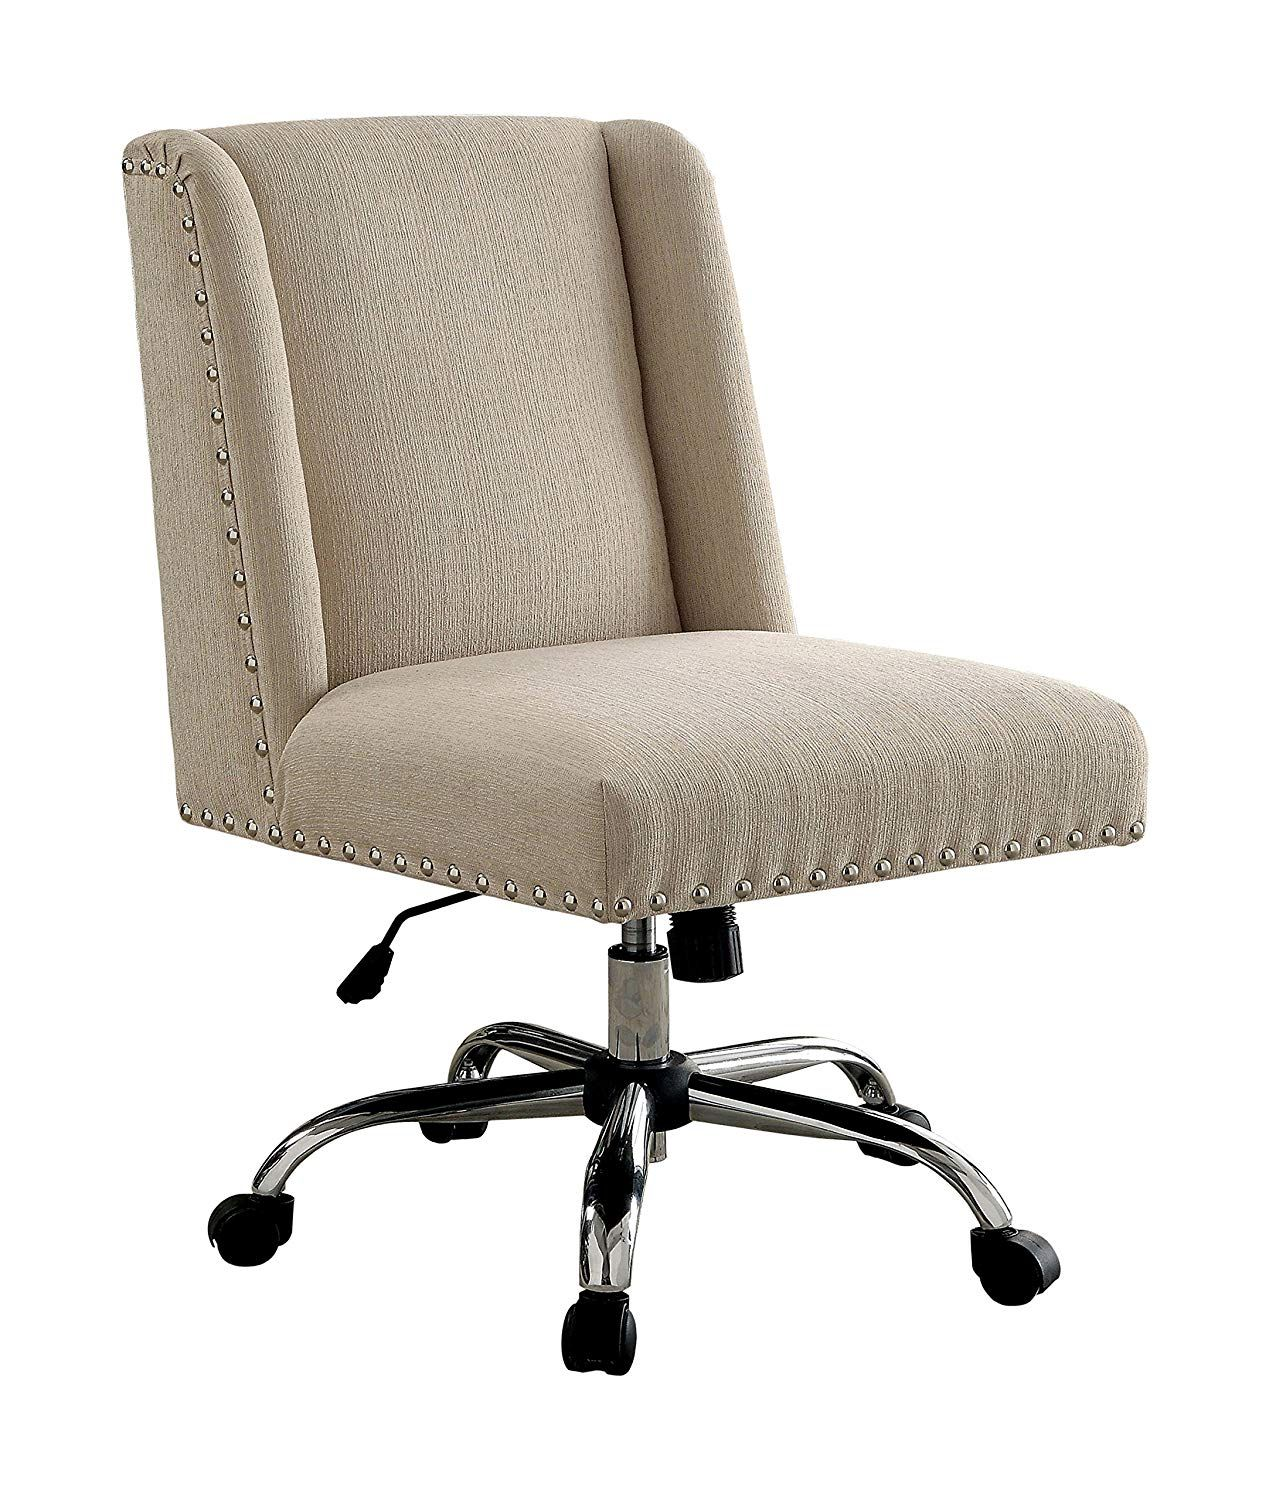 20 Cheap Comfy Desk Chair Ideas For Beautiful Home Offices Or Bedrooms Desk Chair Comfy Contemporary Office Chairs Adjustable Office Chair